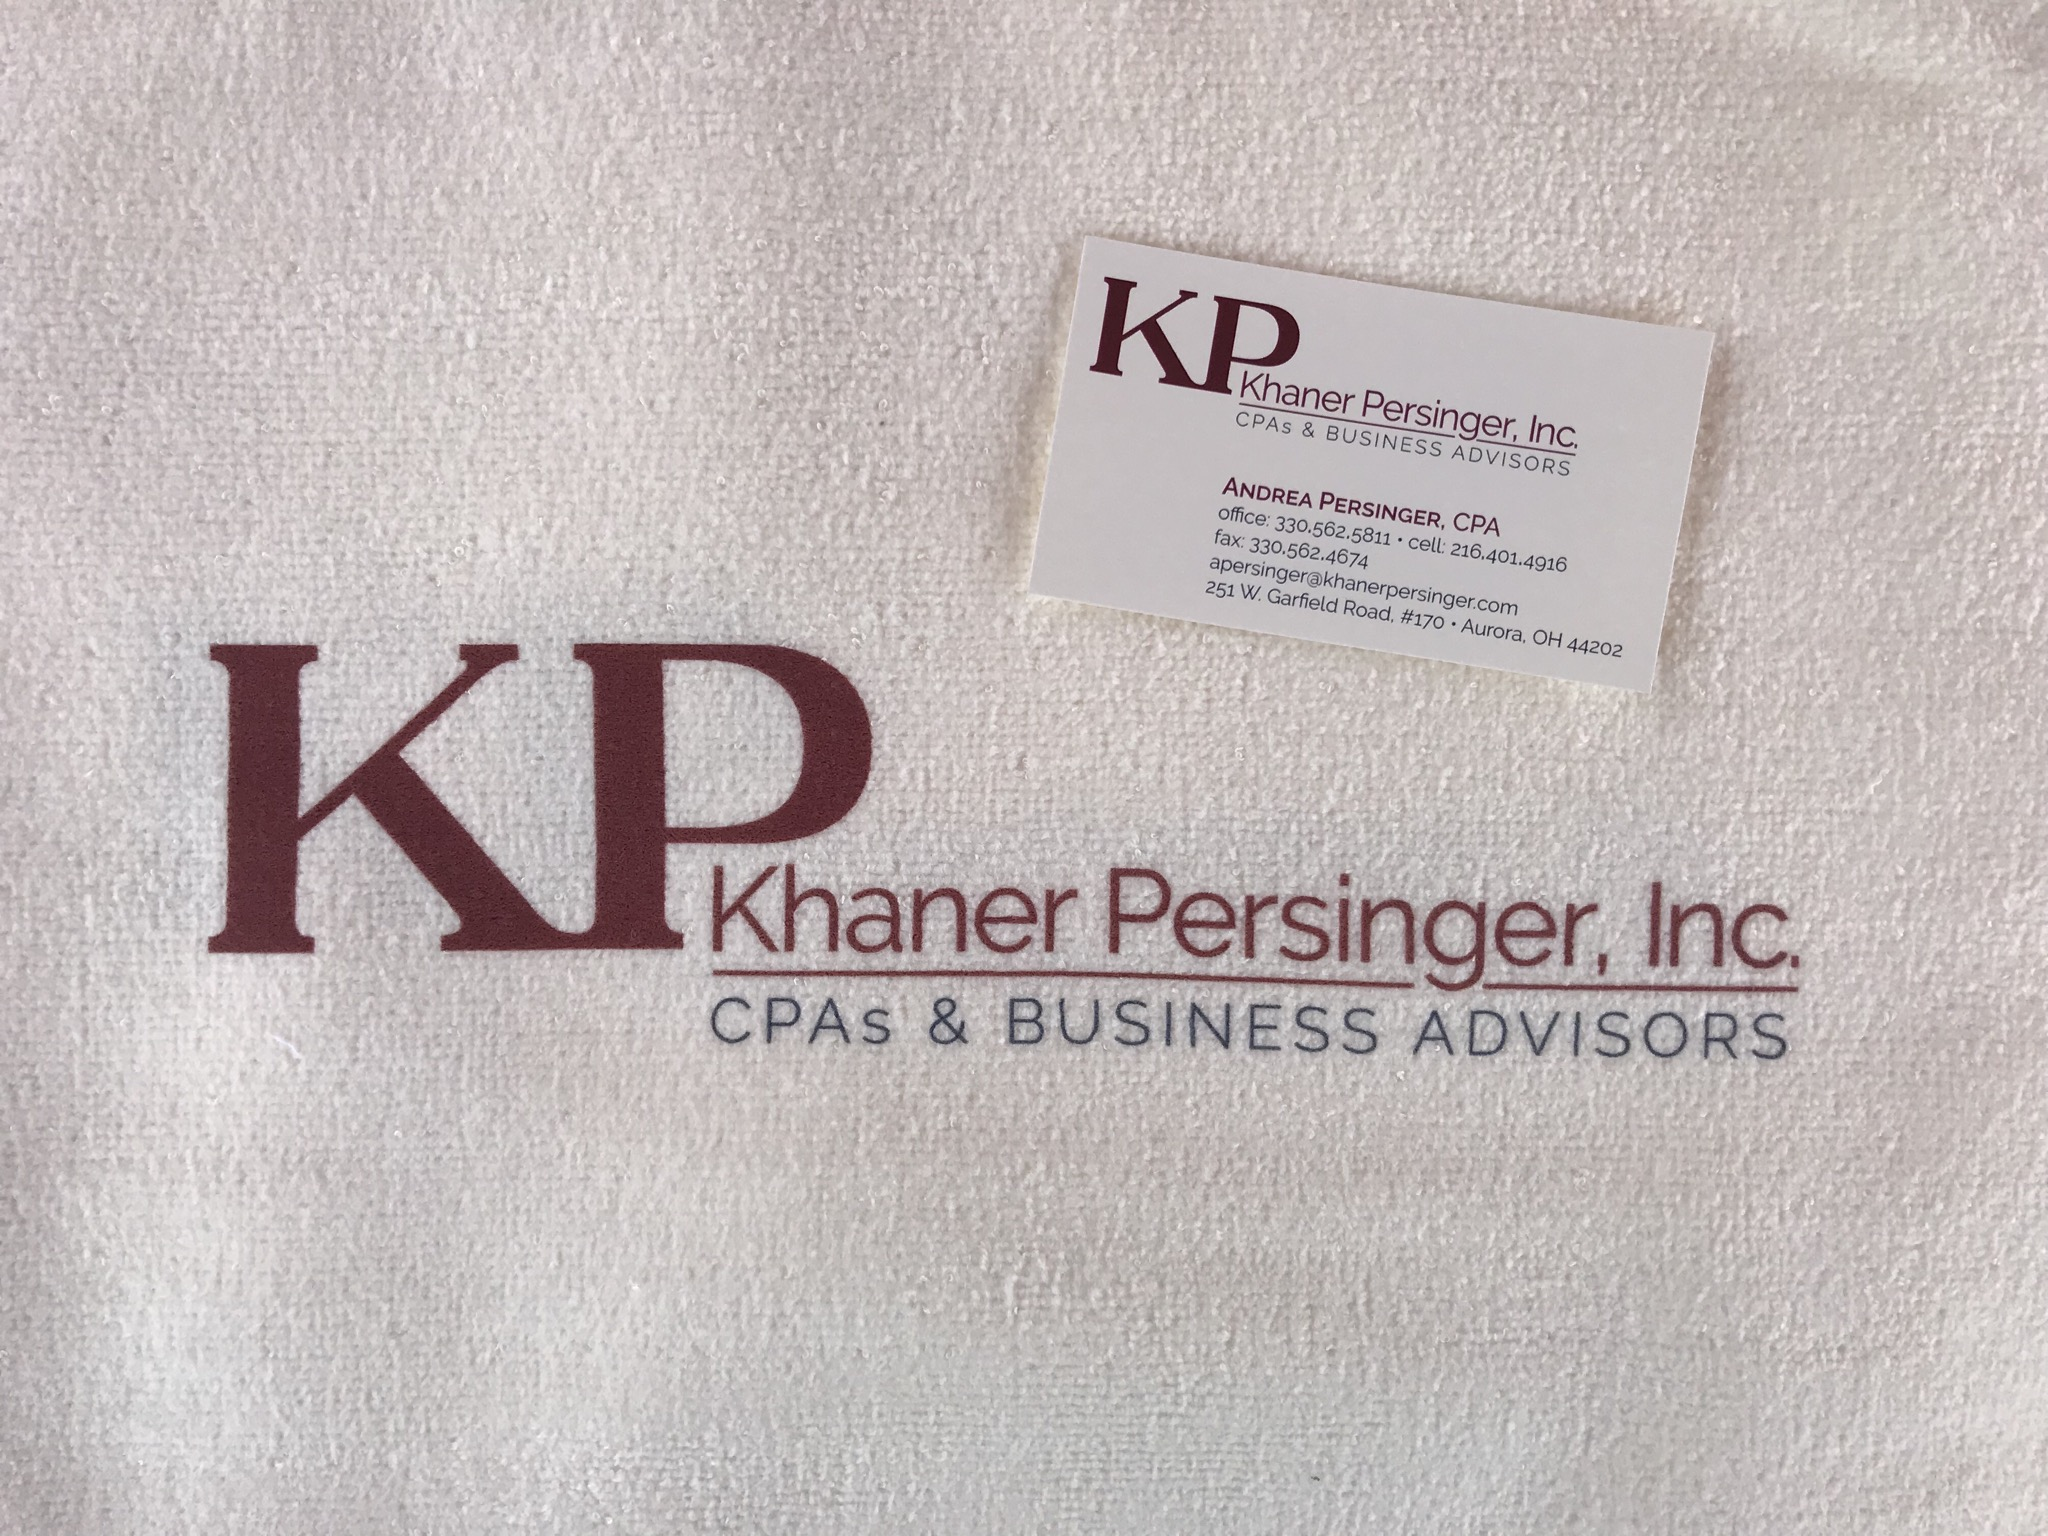 Beautiful and HOT day at Boulder Creek Golf Club representing Khaner Persinger, Inc! Aurora Chamber of Commerce members and guests were able to take a chance and chip shot for cool KP swag. Who's representing your brand?